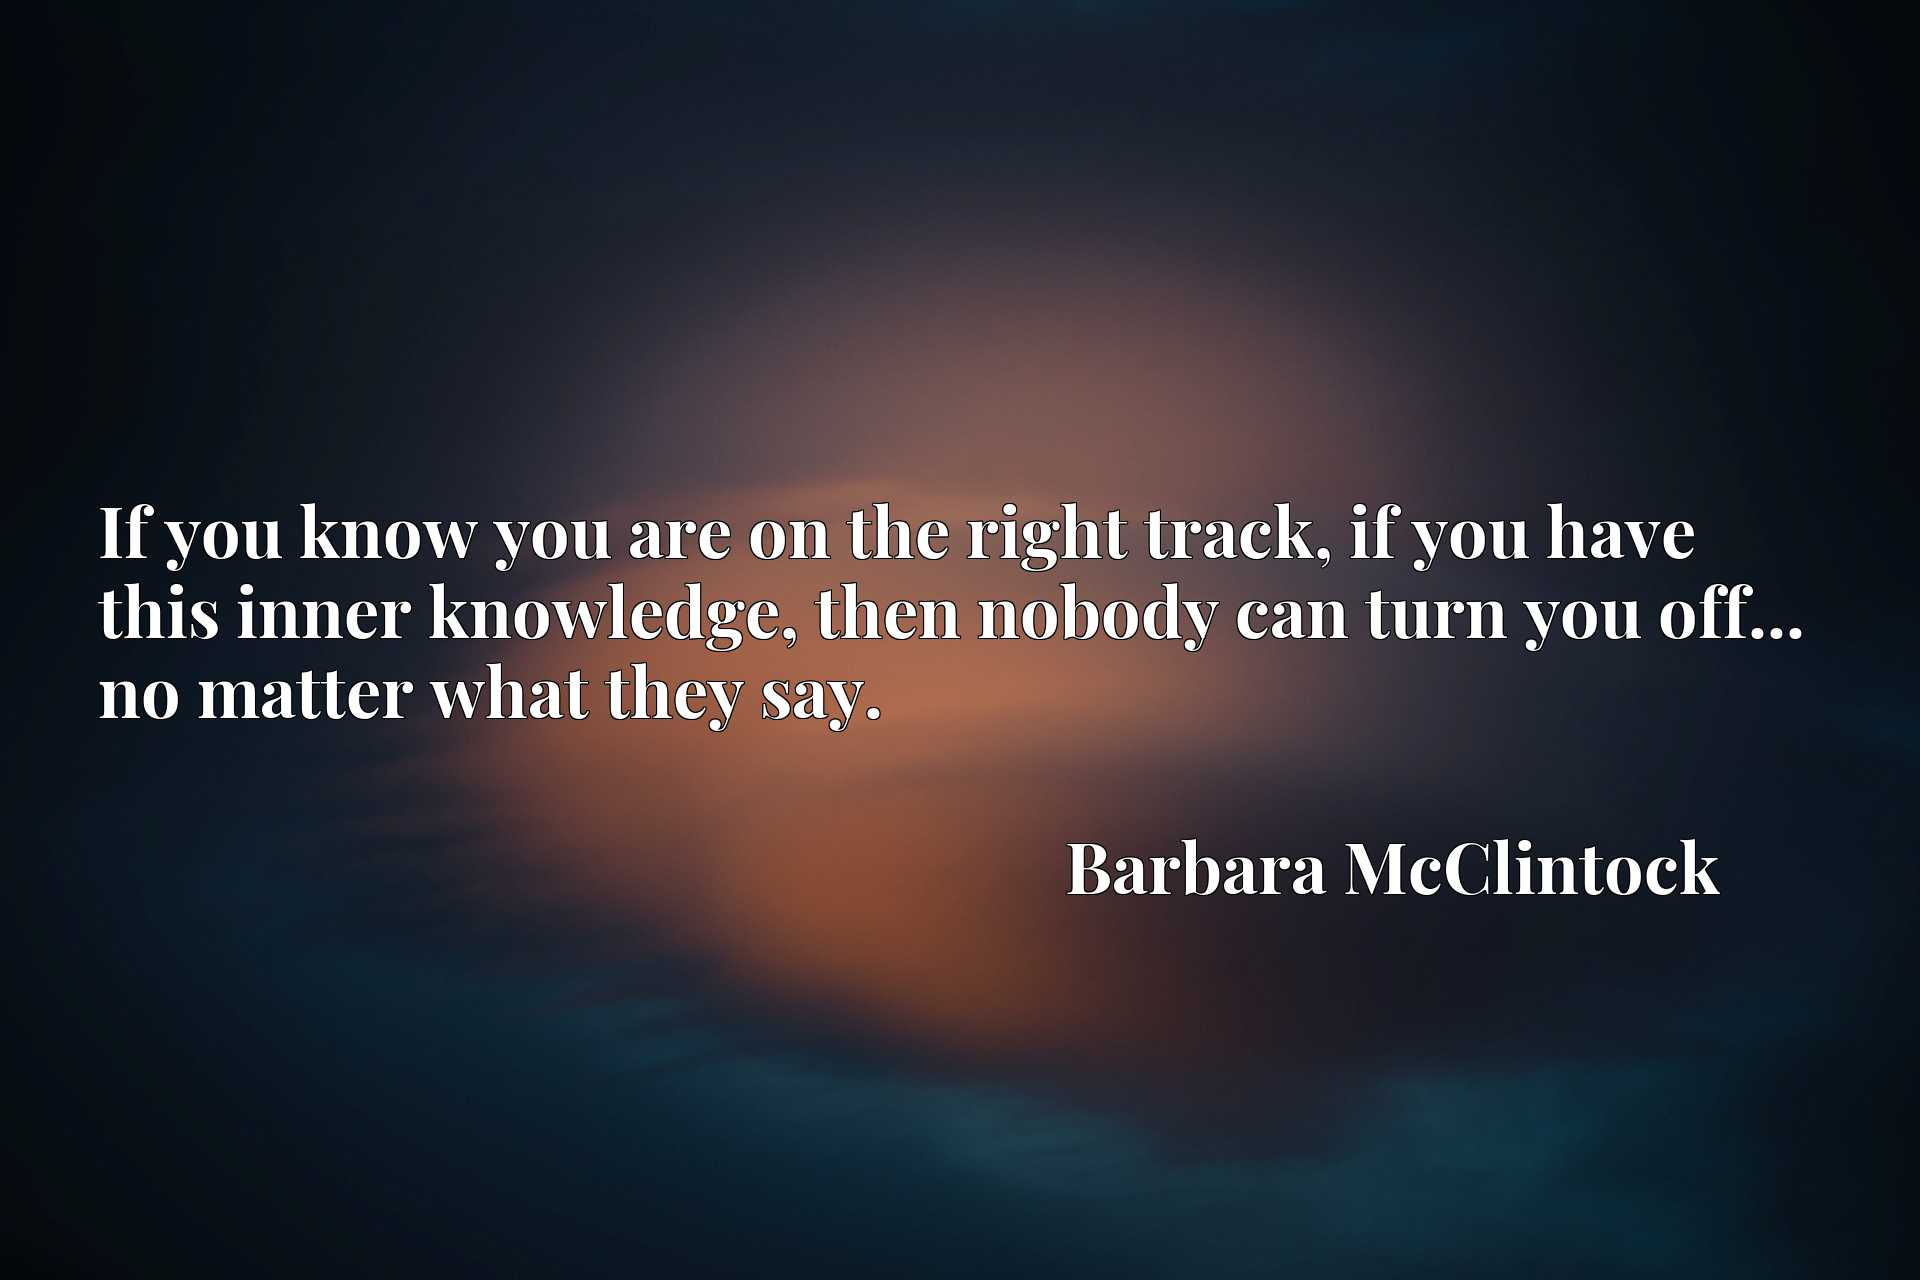 Quote Picture :If you know you are on the right track, if you have this inner knowledge, then nobody can turn you off... no matter what they say.